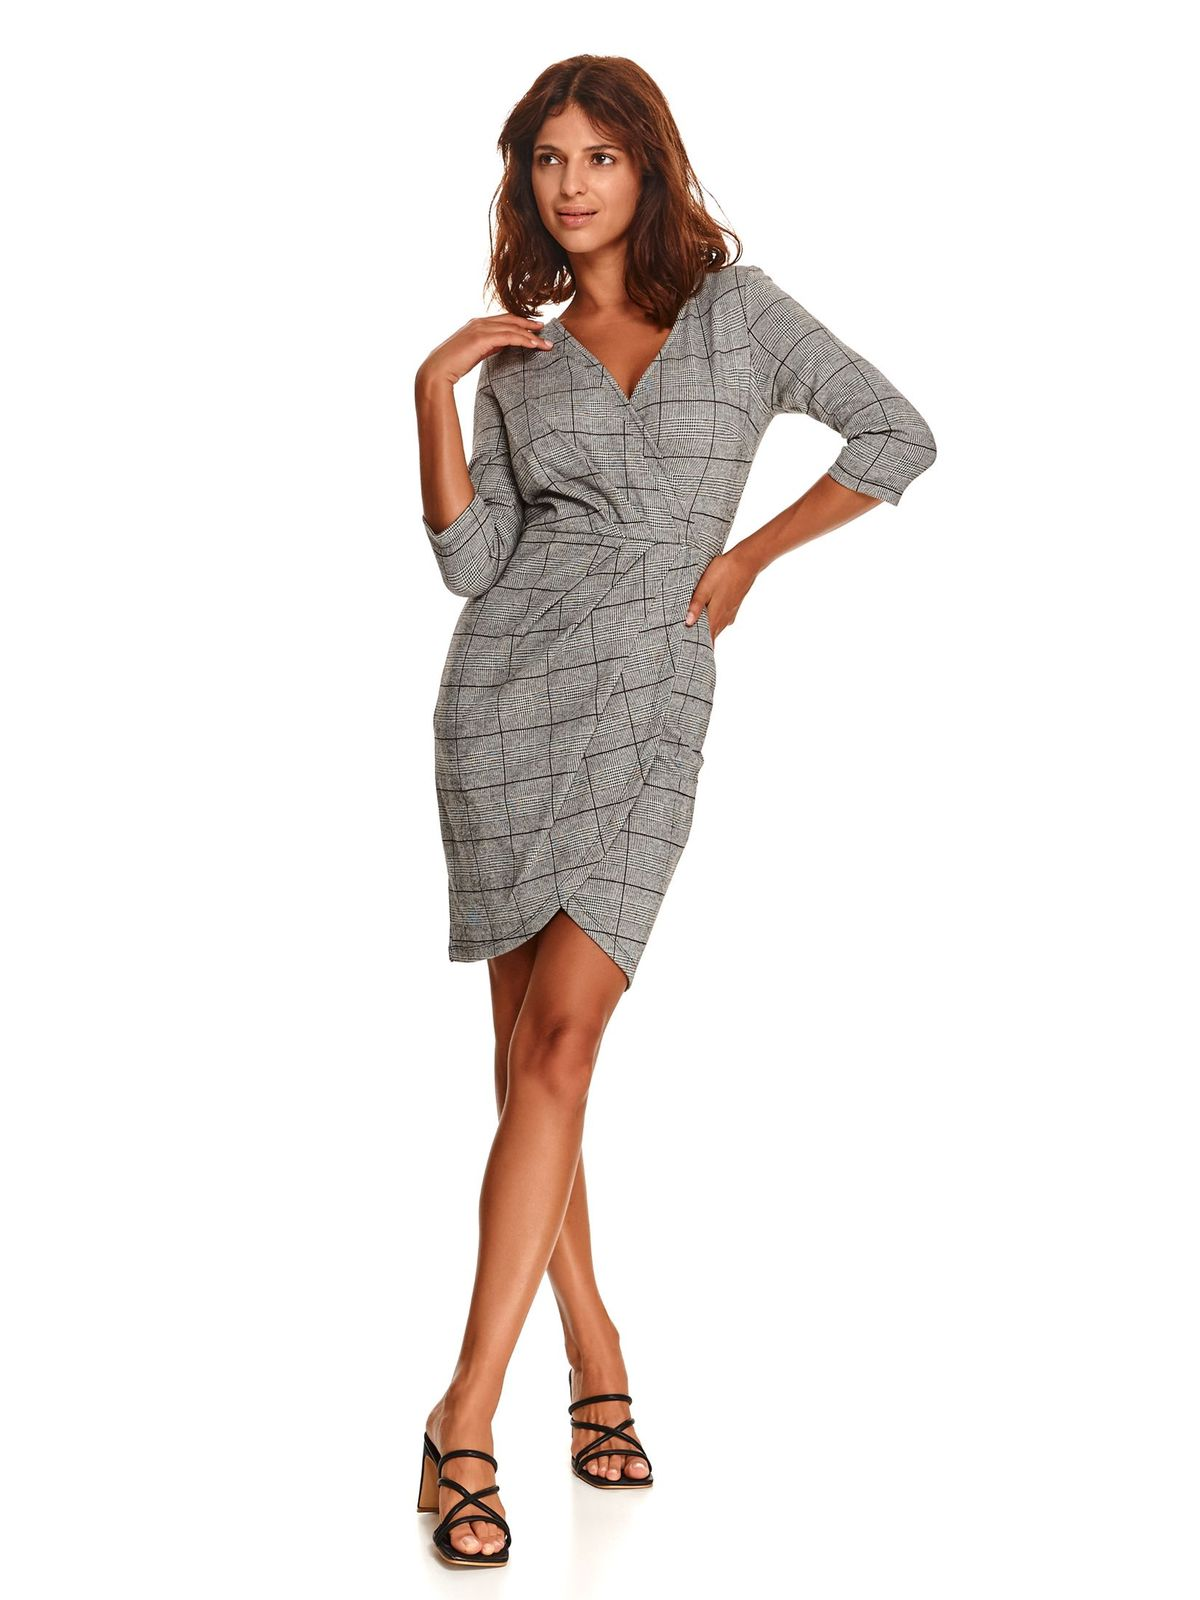 Grey dress short cut pencil from elastic fabric long sleeve with chequers